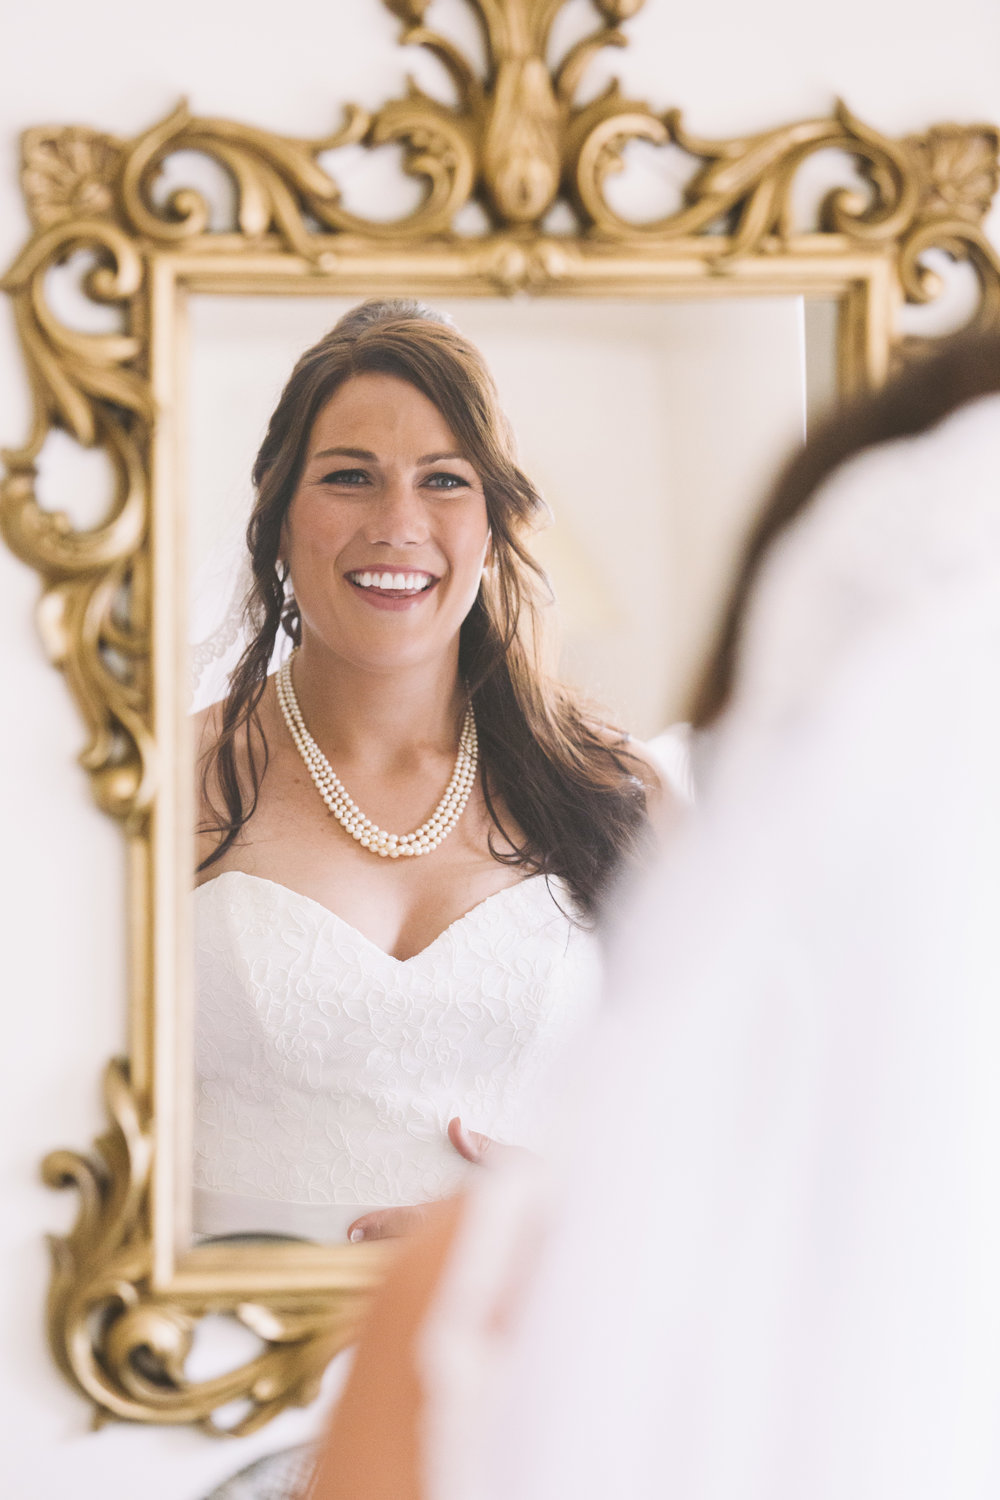 bride staring into mirror on her wedding day